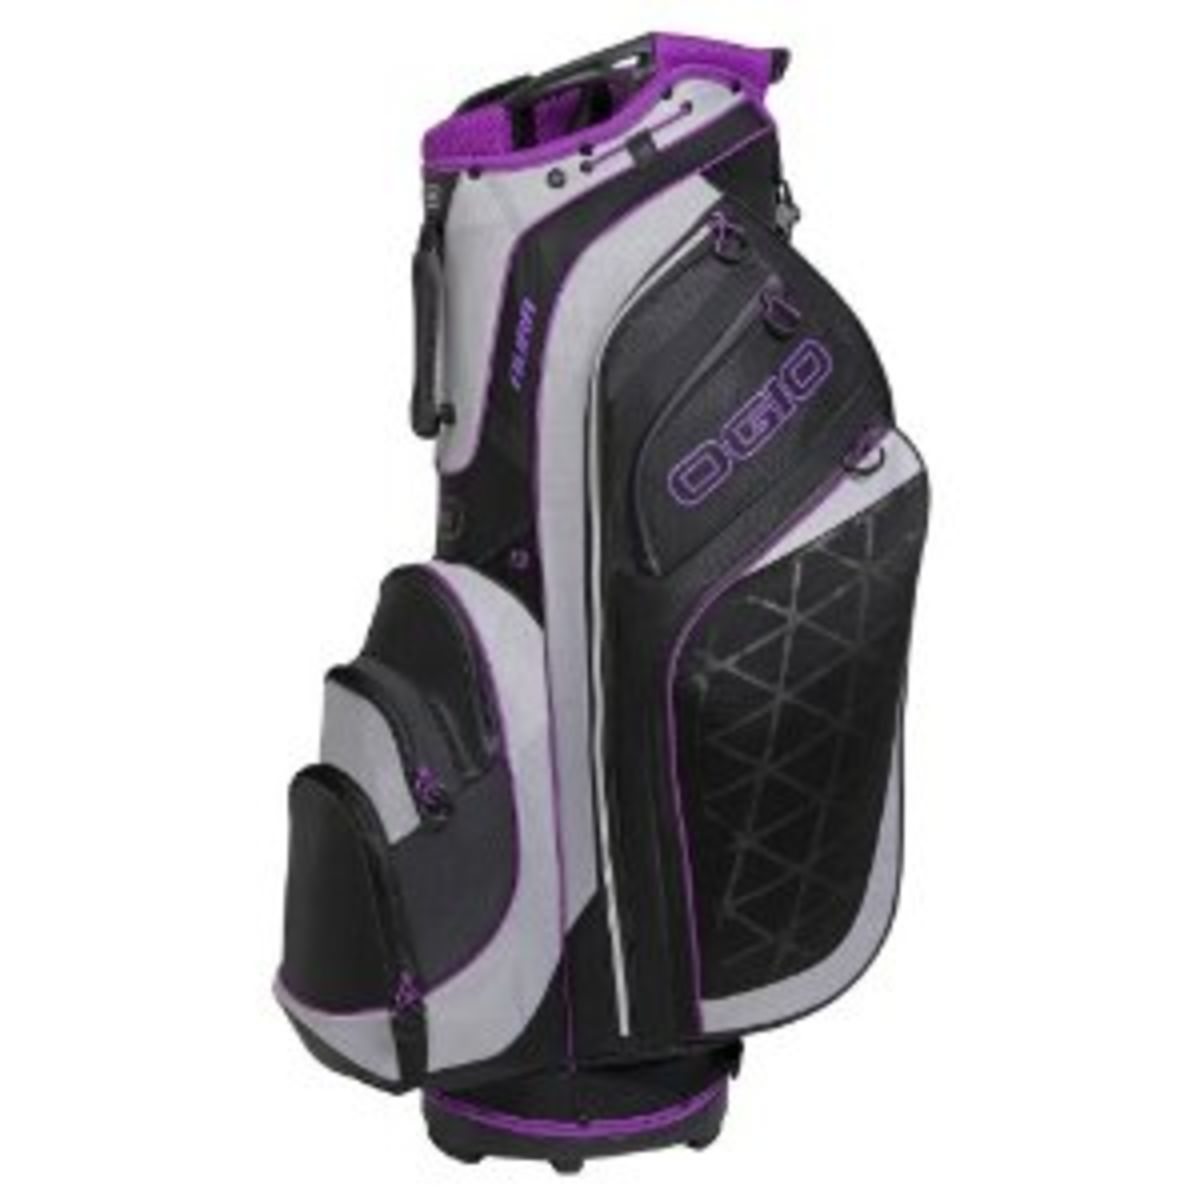 Headline for Best Ladies Lightweight Golf Cart Bags On Sale - Reviews and Ratings